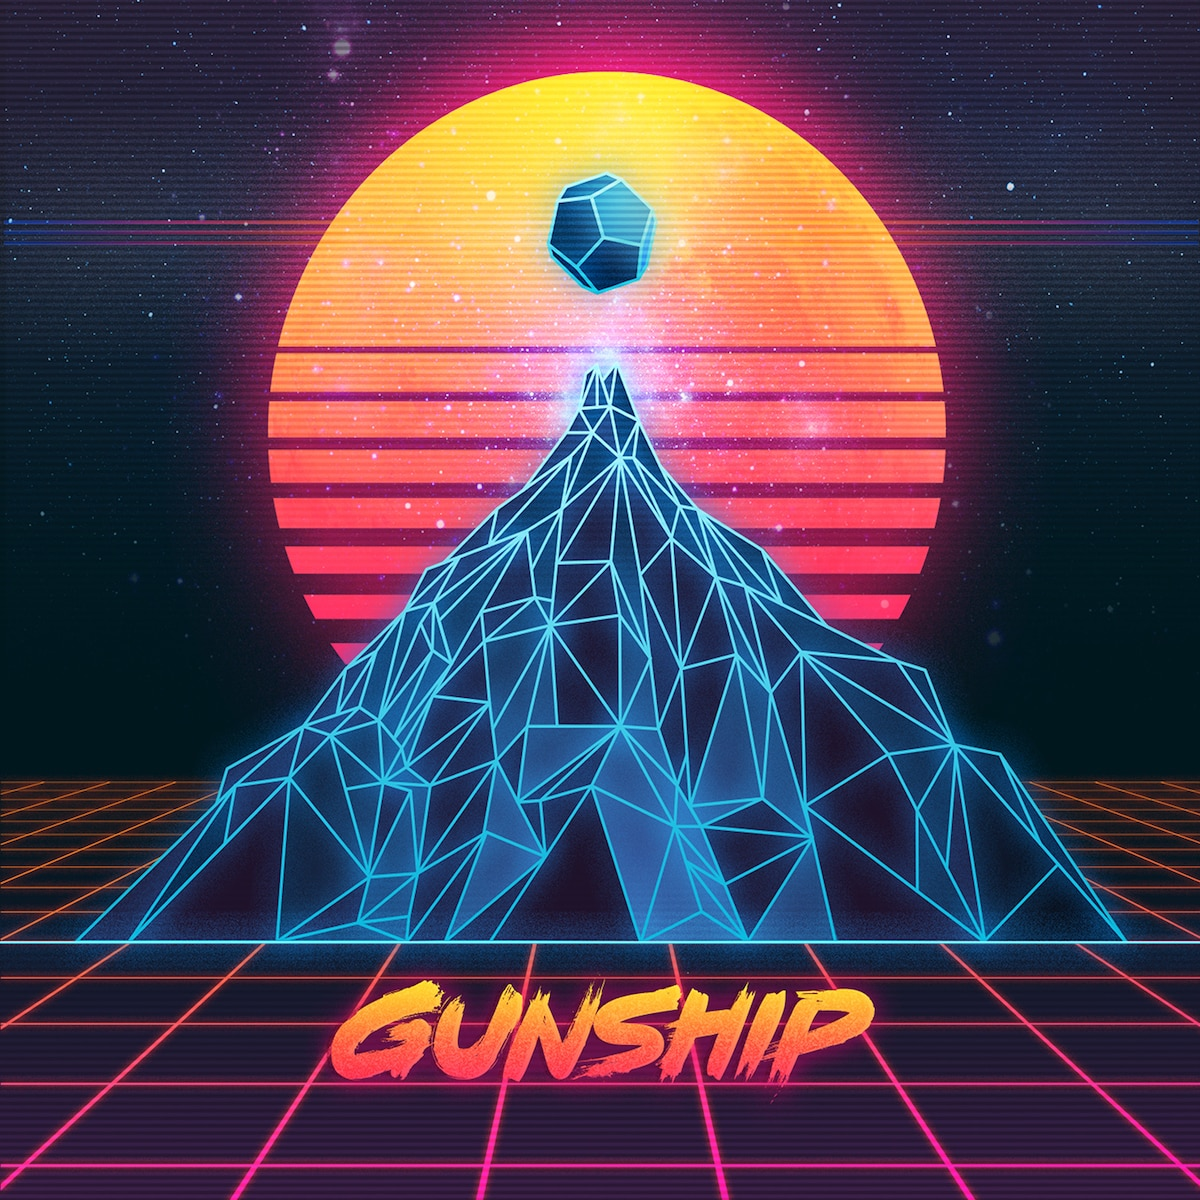 Gunship Cover - Exclusive: Gunship Dishes on the Rise of Synthwave Popularity, a New Album, and Stranger Things